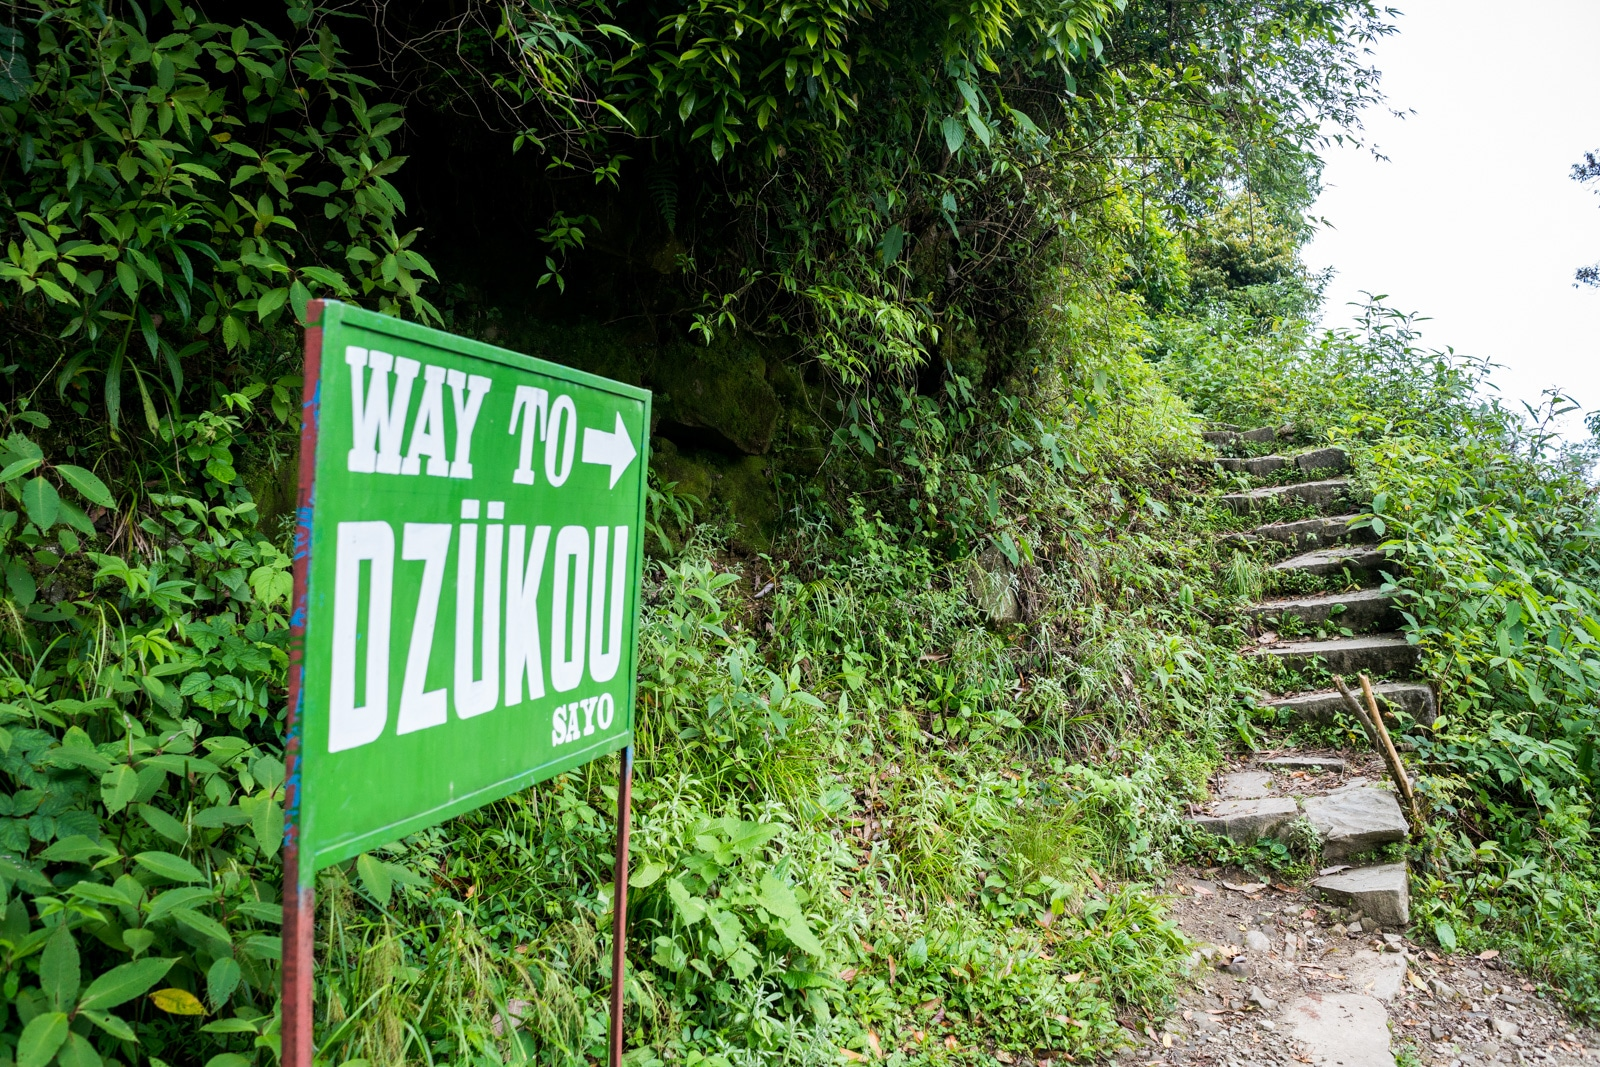 How to get to Dzukou Valley from Nagaland, India - Sign marking the start of the Viswema approach to Dzukou Valley - Lost With Purpose